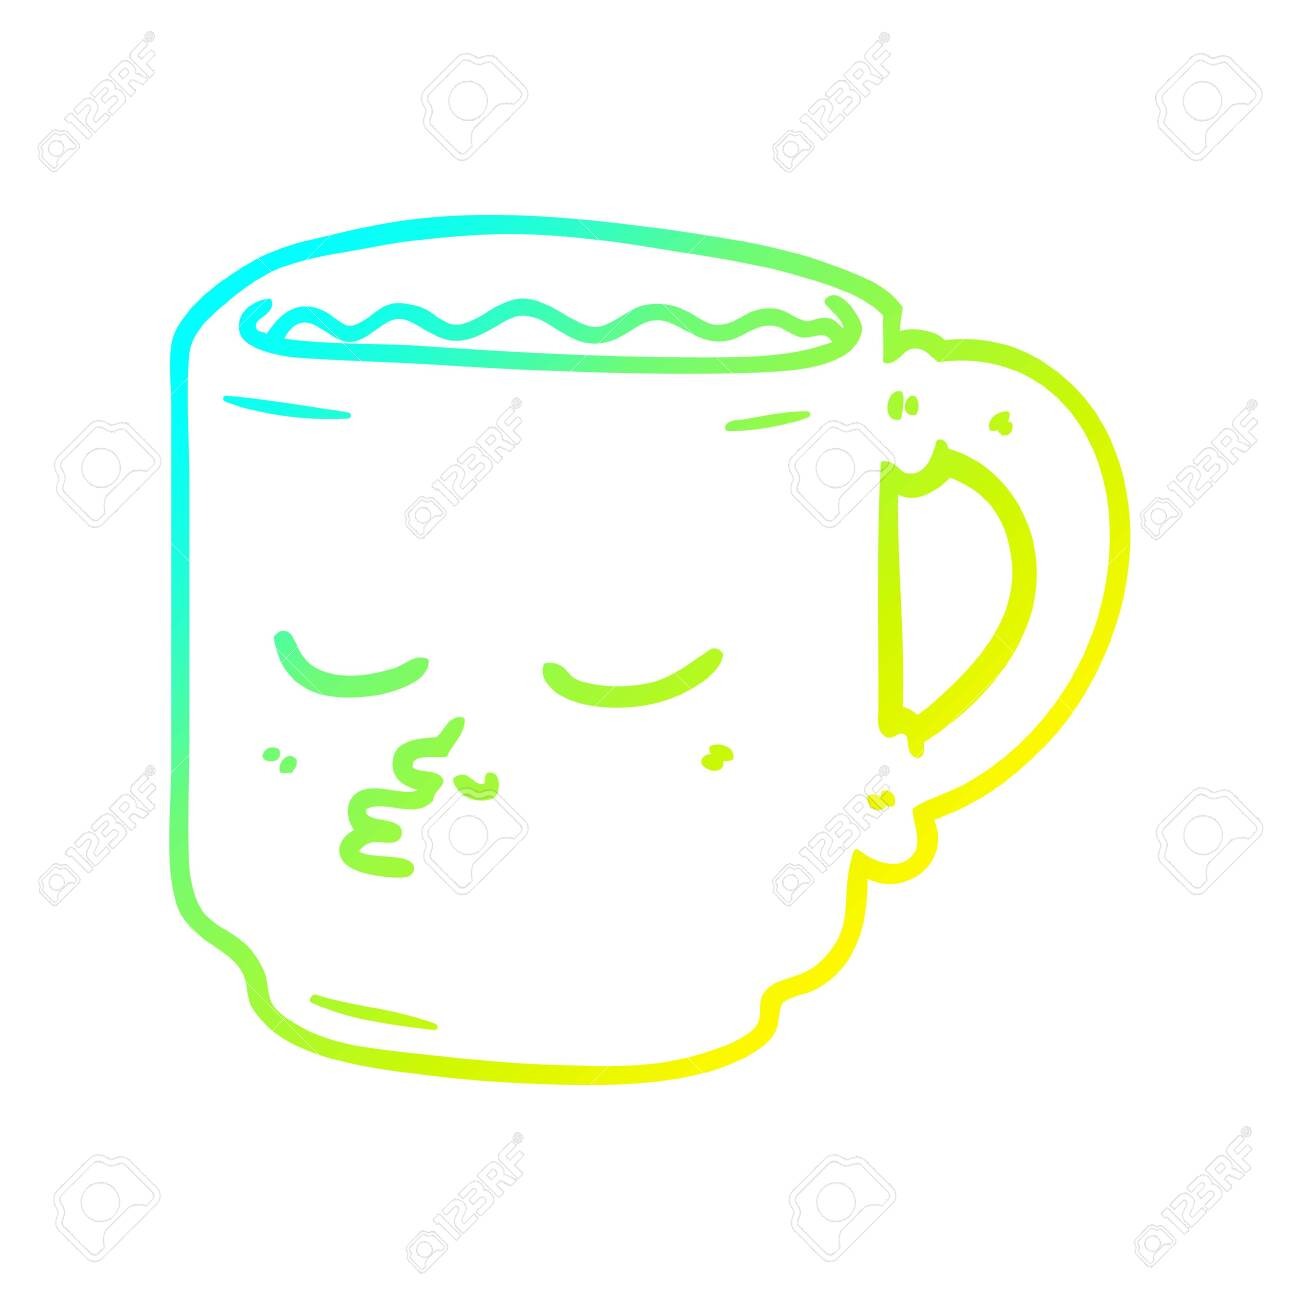 Cold Gradient Line Drawing Of A Cartoon Coffee Mug Royalty Free Cliparts Vectors And Stock Illustration Image 129821819